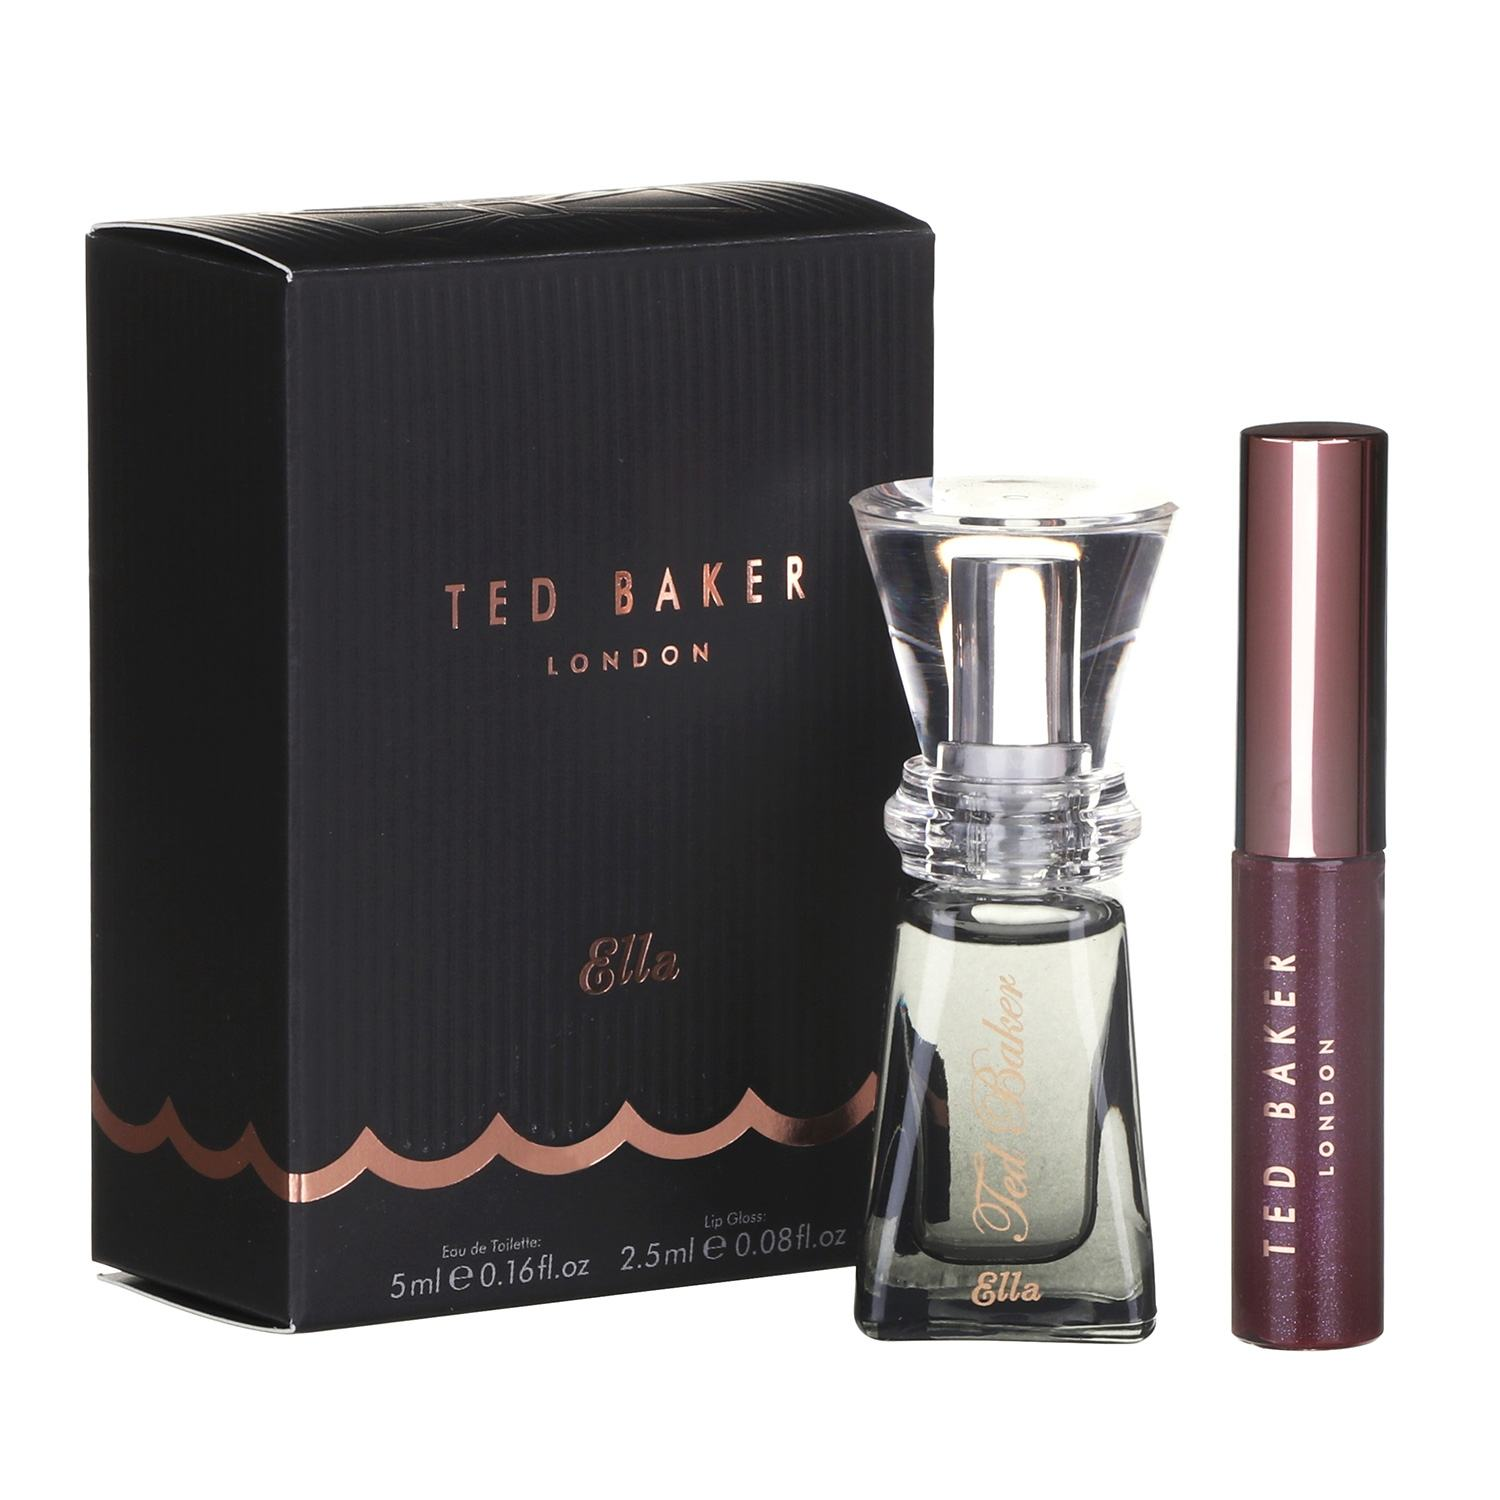 Ted Baker Sweet Things Come In Three Ella Perfume Lip Gloss Temptation Gifts